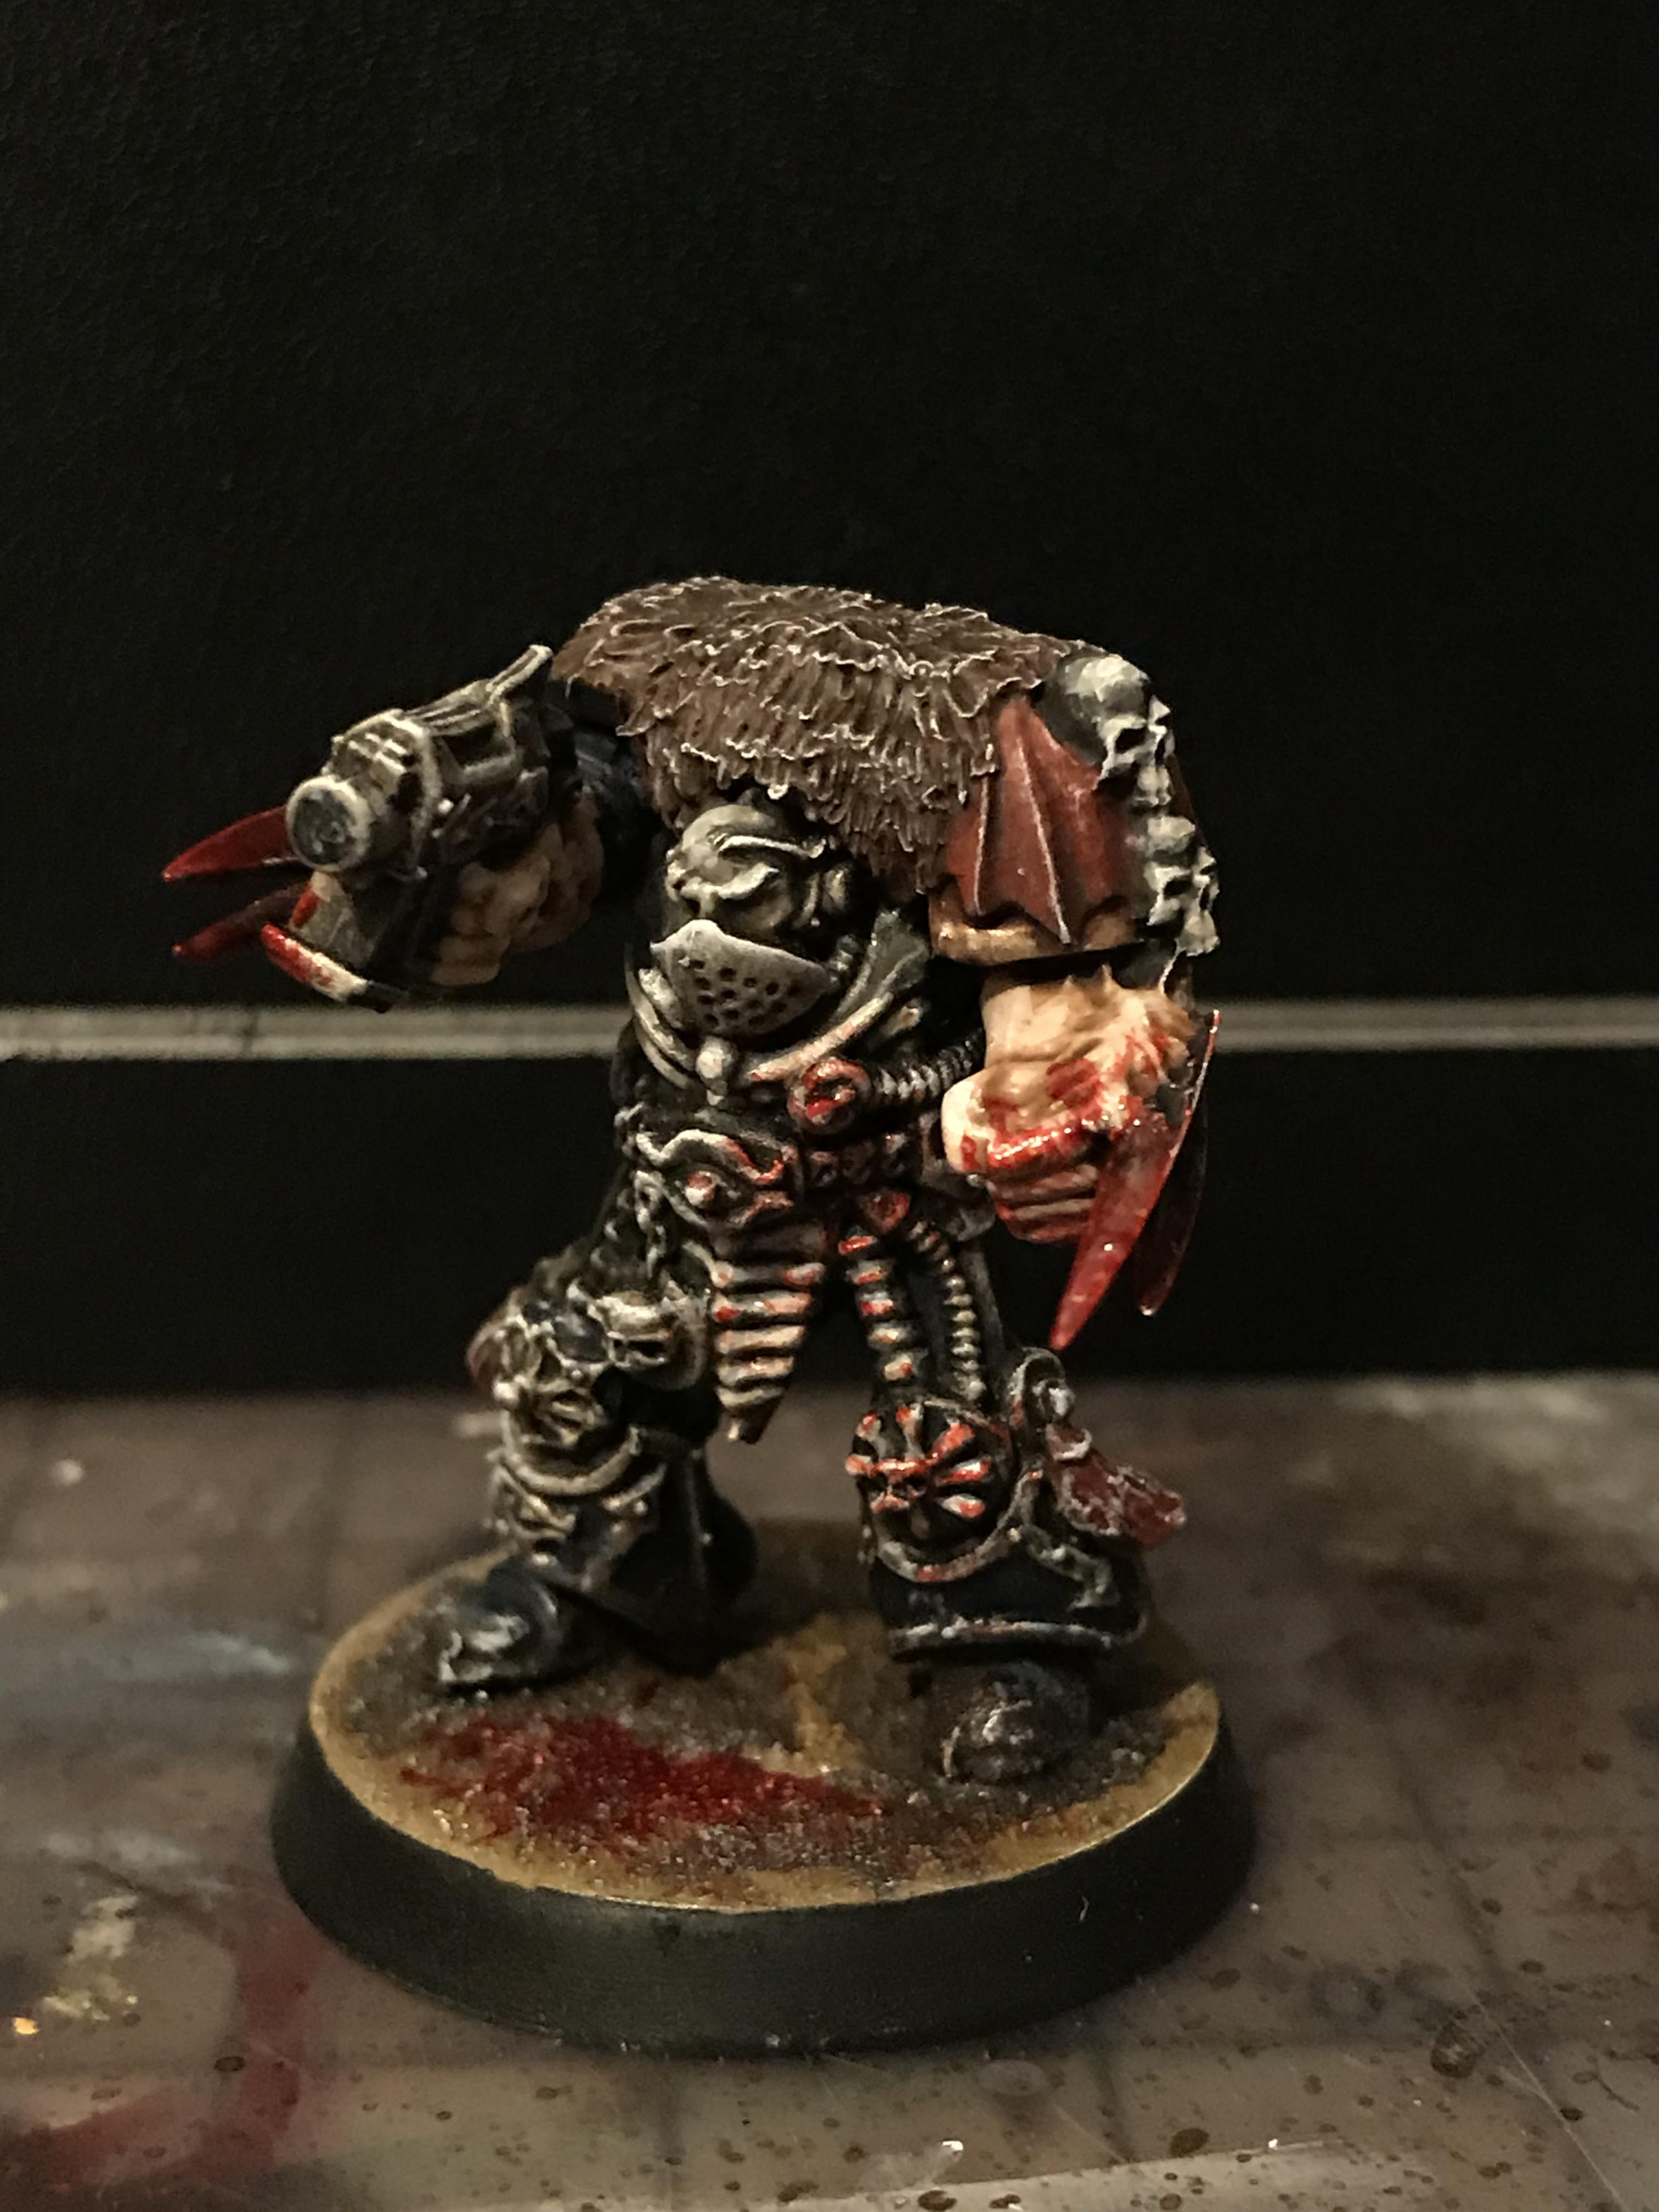 Armor, Army, Assault, Astardes, Attack, Black, Blood, Chaos, Chosen, Conversion, Corrupted, Crimson, Curze, Death, Evil, Fast, Flayed, Flayer, Flesh, Green, Grisly, Hand, Heresy, Heretic, Horrors, Horus, Kaos, Kill, Killers, Kit Bash, Konrad, Legion, Legionnaire, Legionnaires, Legionnes, Legions, Lightning, Lord, Lords, Man, Mask, Murder, Murderers, Night, Night Lords, Pained, Pirate, Pirates, Power, Primarch, Rage, Raiders, Raptors, Reaver, Reavers, Red, Renegade, Renegades, Retinue, Saboteur, Sculpting, Shadow, Shroud, Skin, Soul, Space, Space Marines, Stalkers, Stealth, Stuff, Tactics, Team, Terror, Torture, Traitor, Traitors, Troops, Trophies, Twisted, Veteran, Vile, Violence, Violent